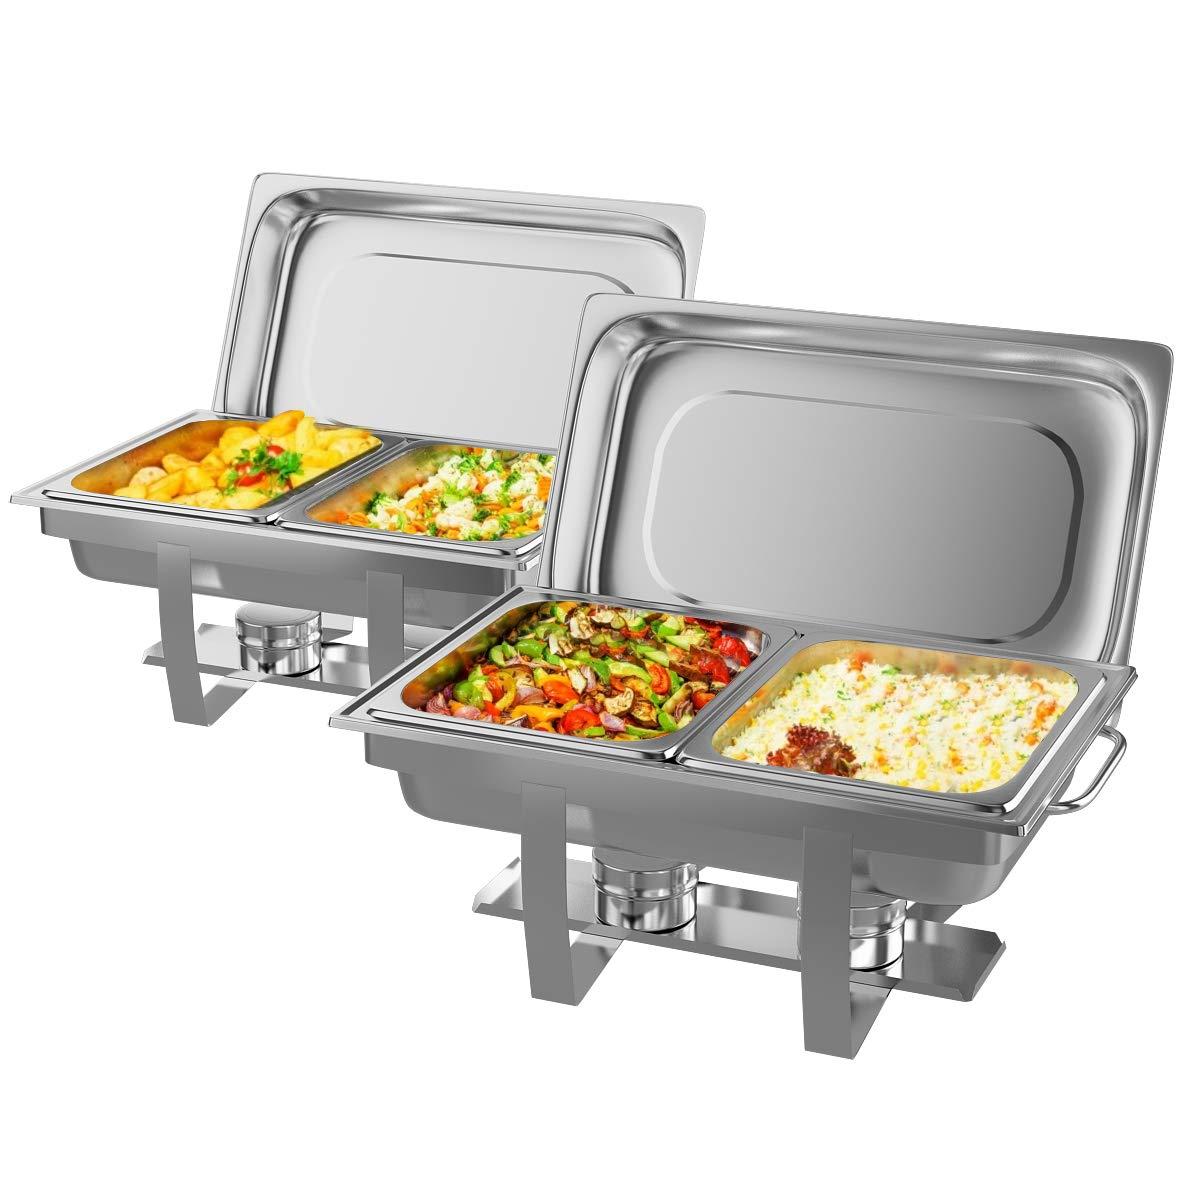 Giantex 2 Packs Chafing Dish 9 Quart Chafer Dishes Buffet Set Stainless Steel Rectangular Chafing Dish Set Full Size with 2 Half Size Pan (23.5''Lx 14''Wx12''H (9 Quart)) by Giantex